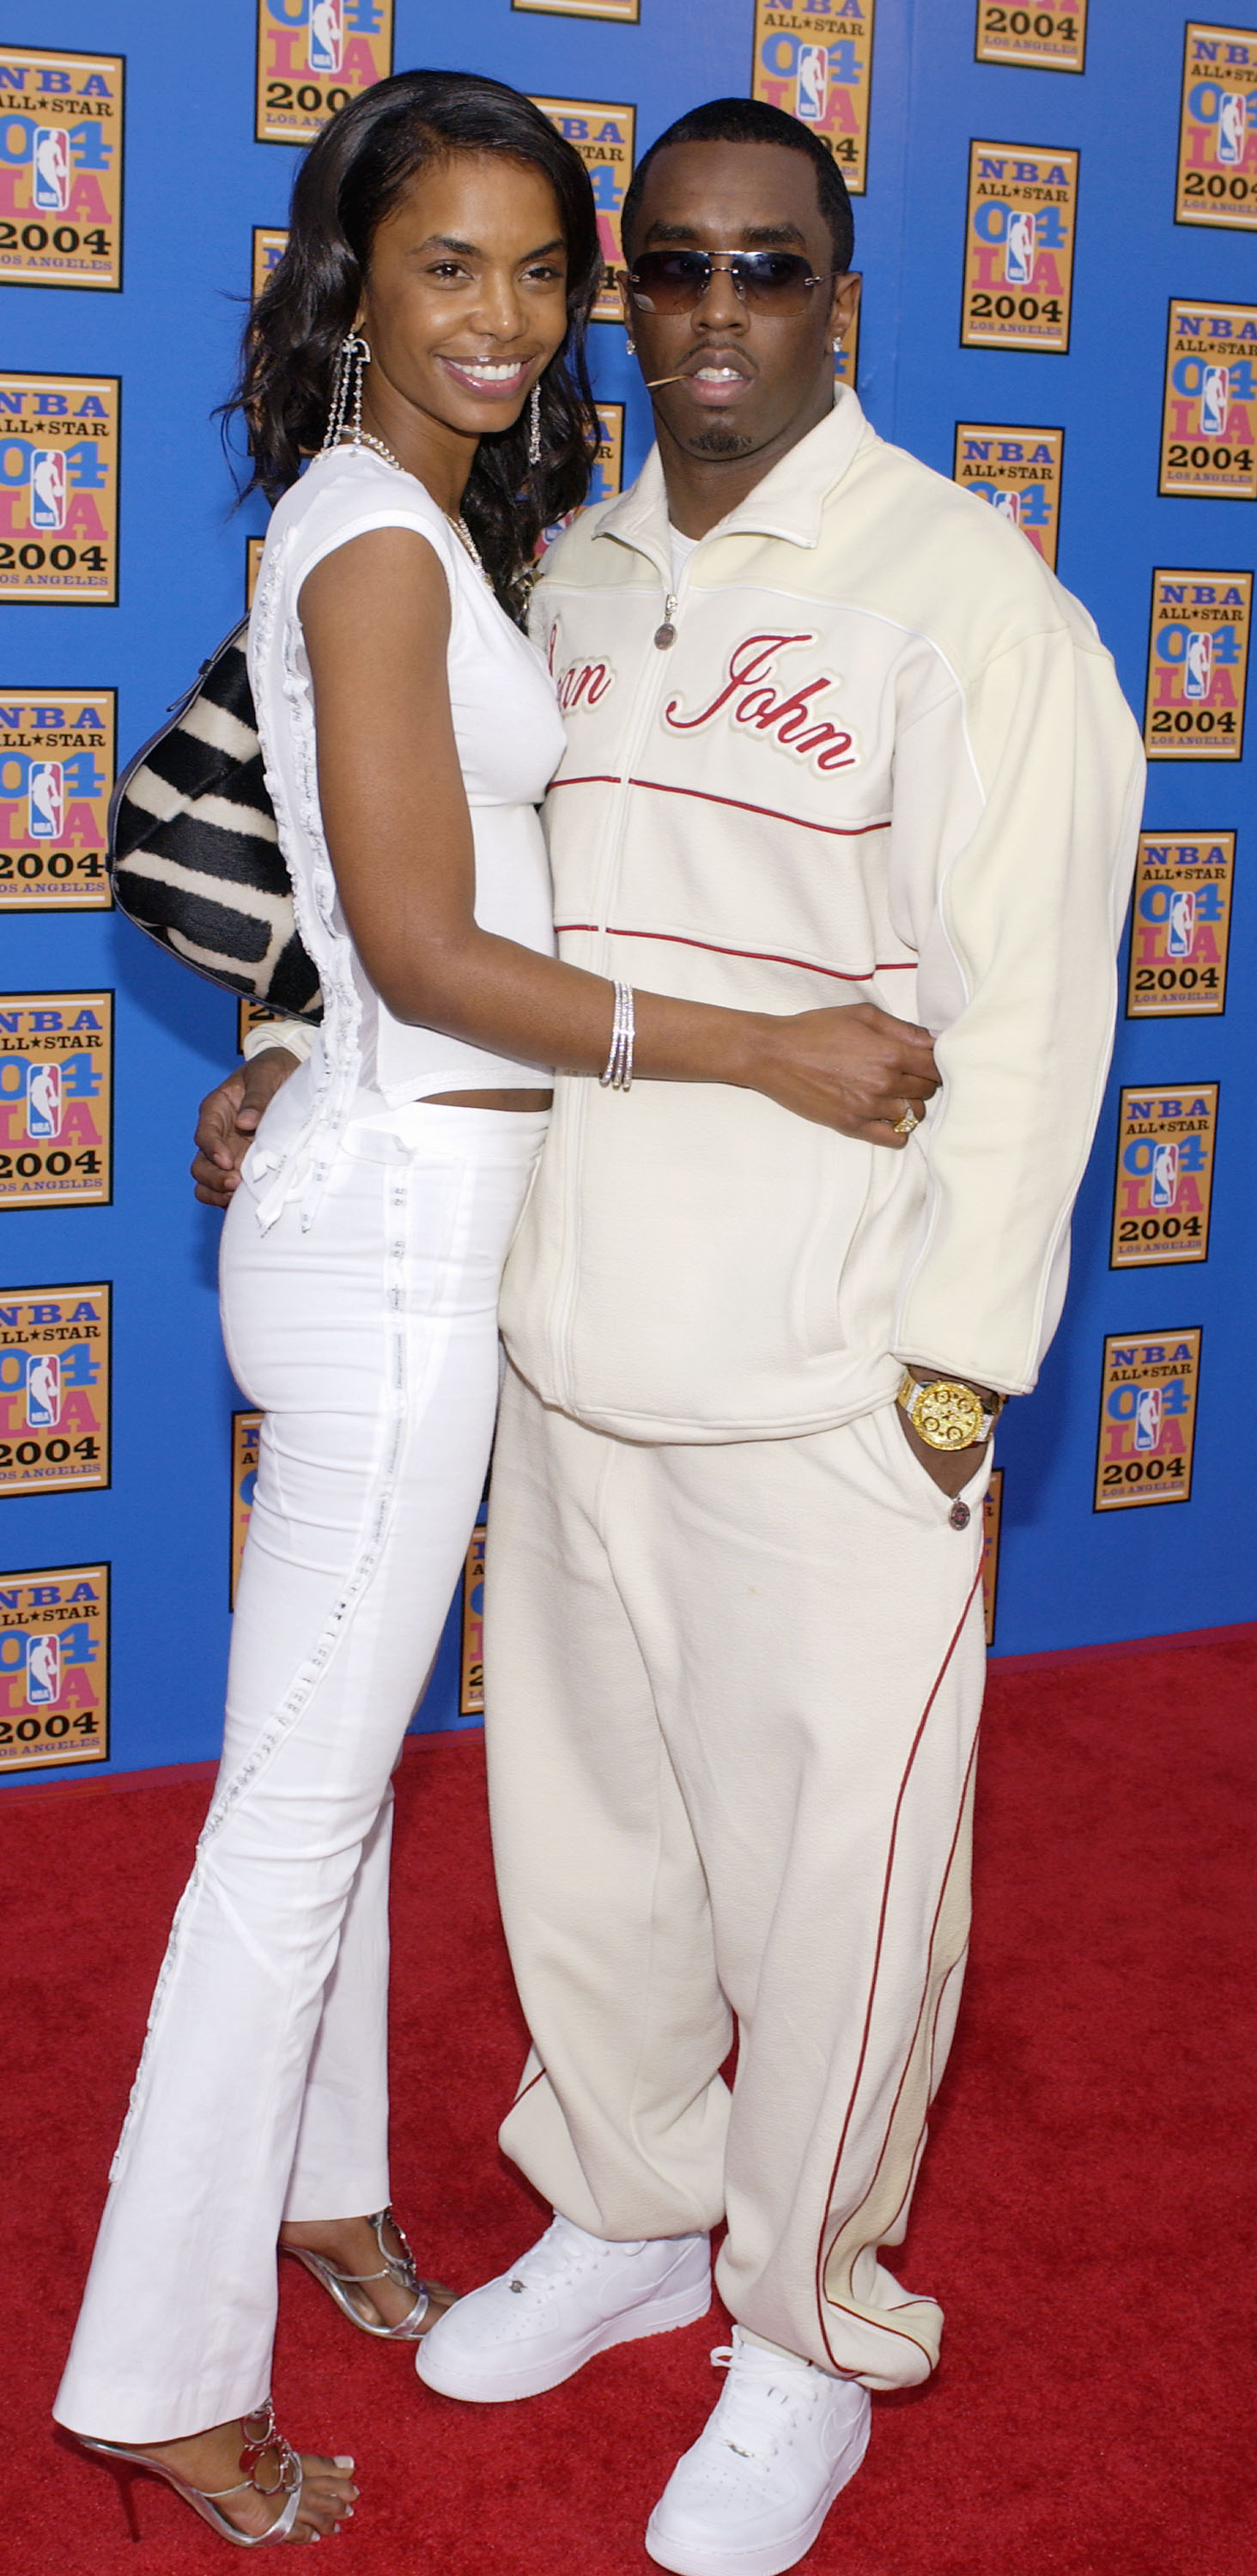 Recording artist and producer Sean 'P Diddy' Combs with his girlfriend Kim Porter attend the 2004 NBA All-Star Game held on February 15, 2004 at the Staples Center, in Los Angeles, California.